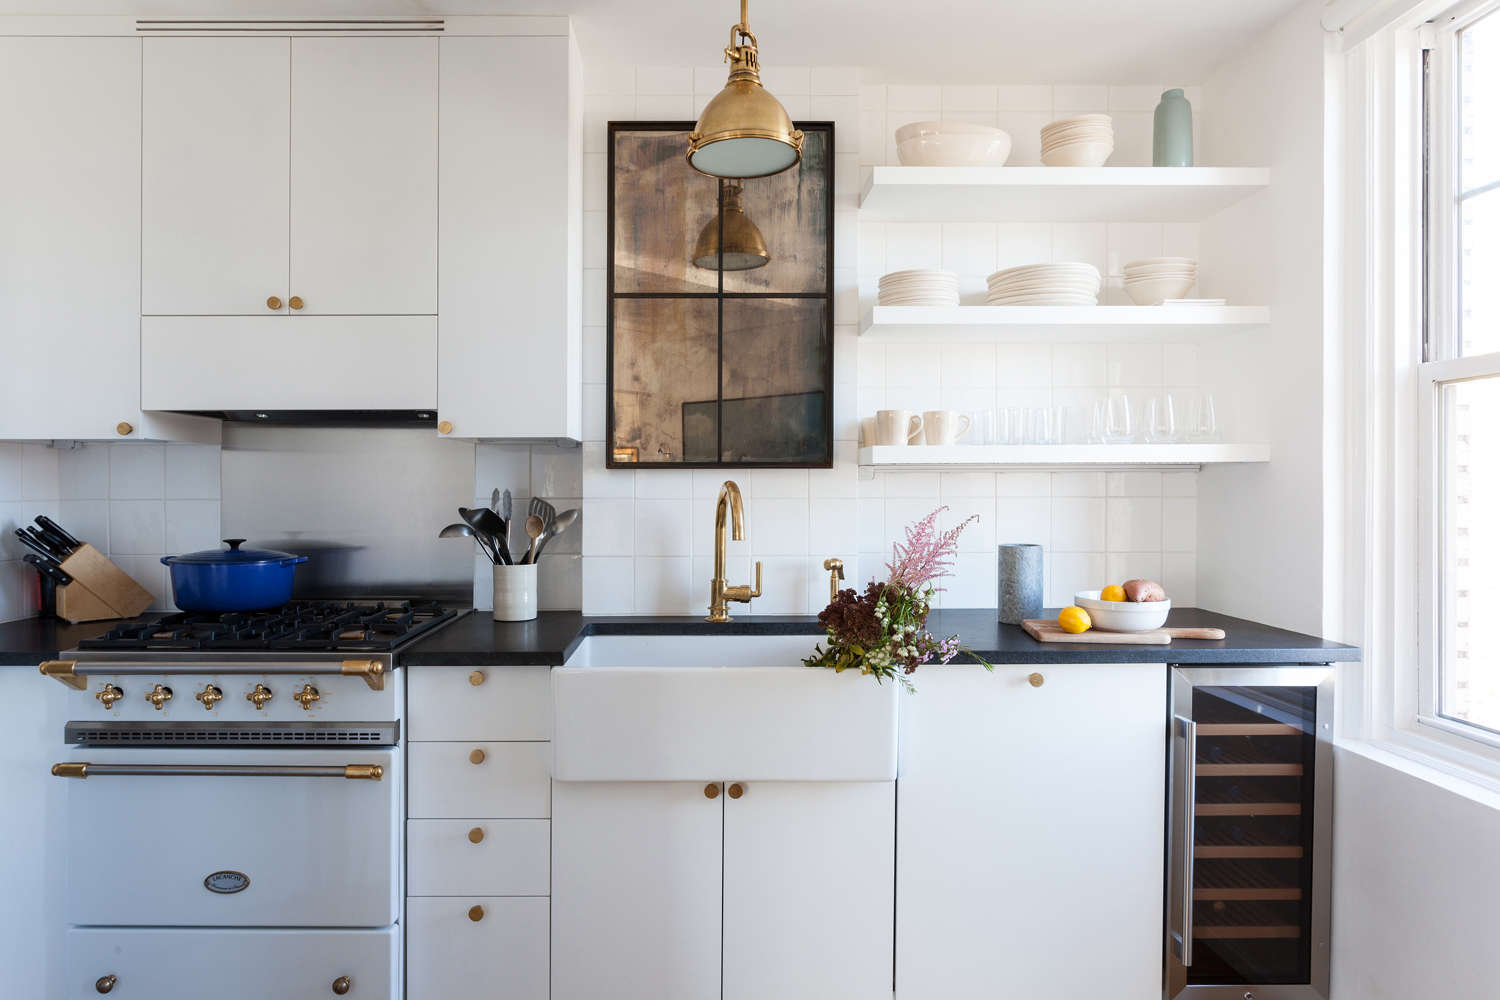 Small Kitchen Design Nyc kitchen of the week: a small kitchen with big personality for